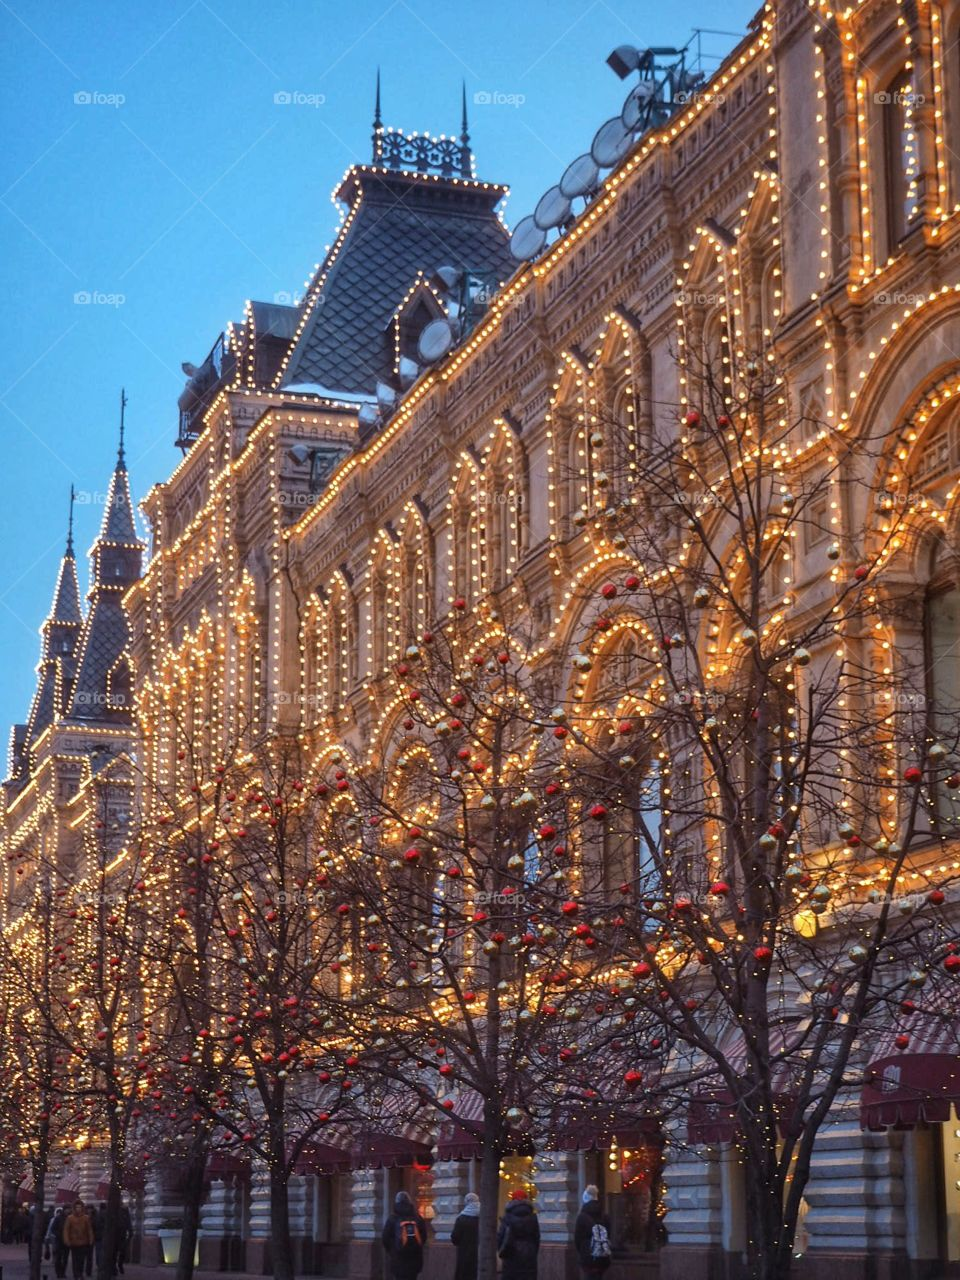 Moscow in lights